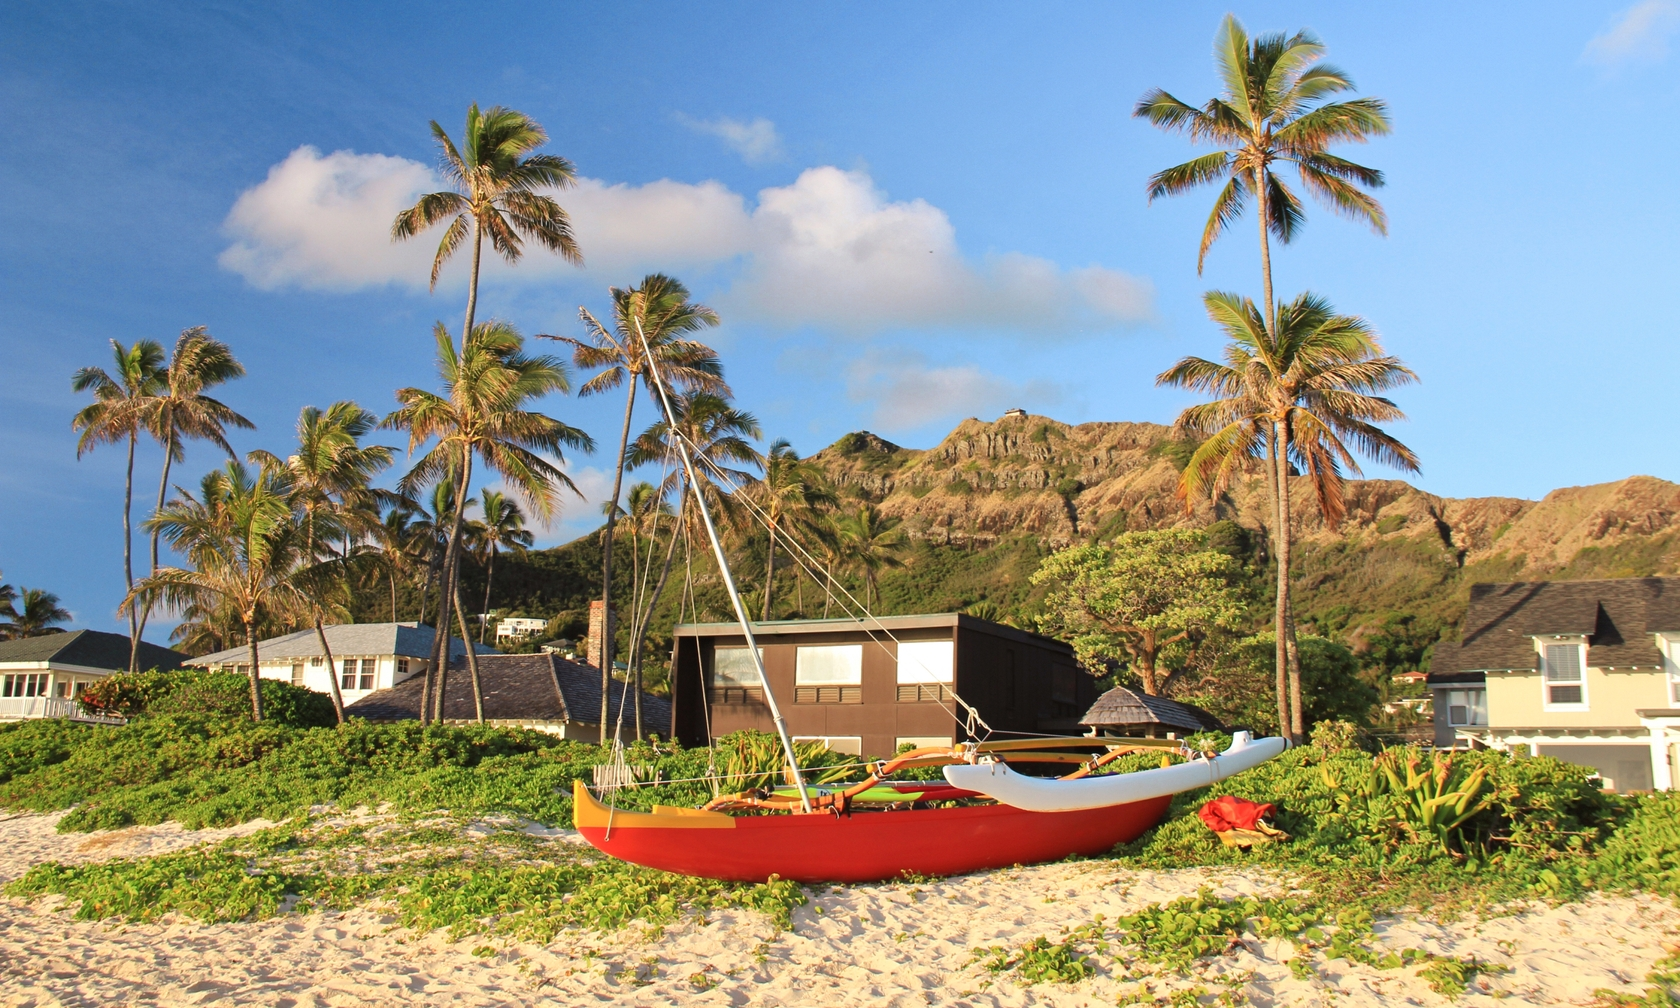 Vacation rentals in Kailua